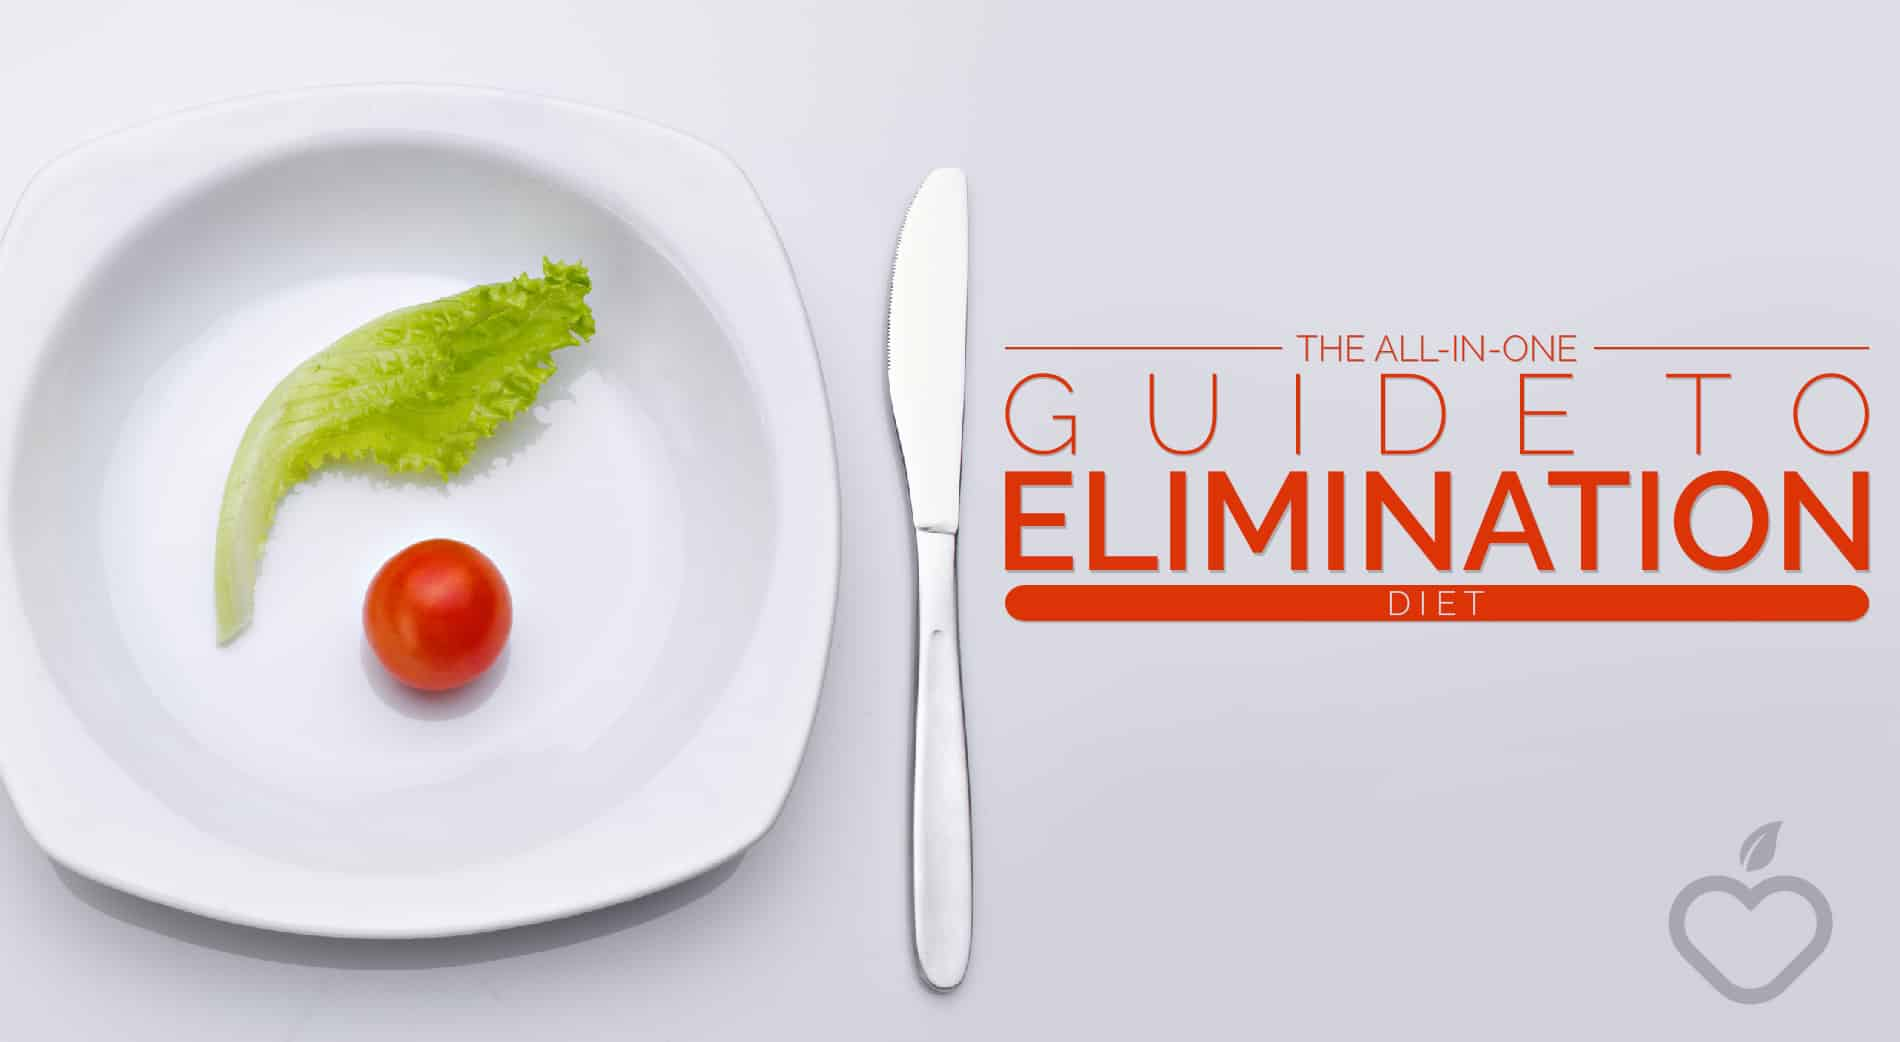 Elimination Diet Image Design 1 - The All-In-One Guide To Elimination Diet